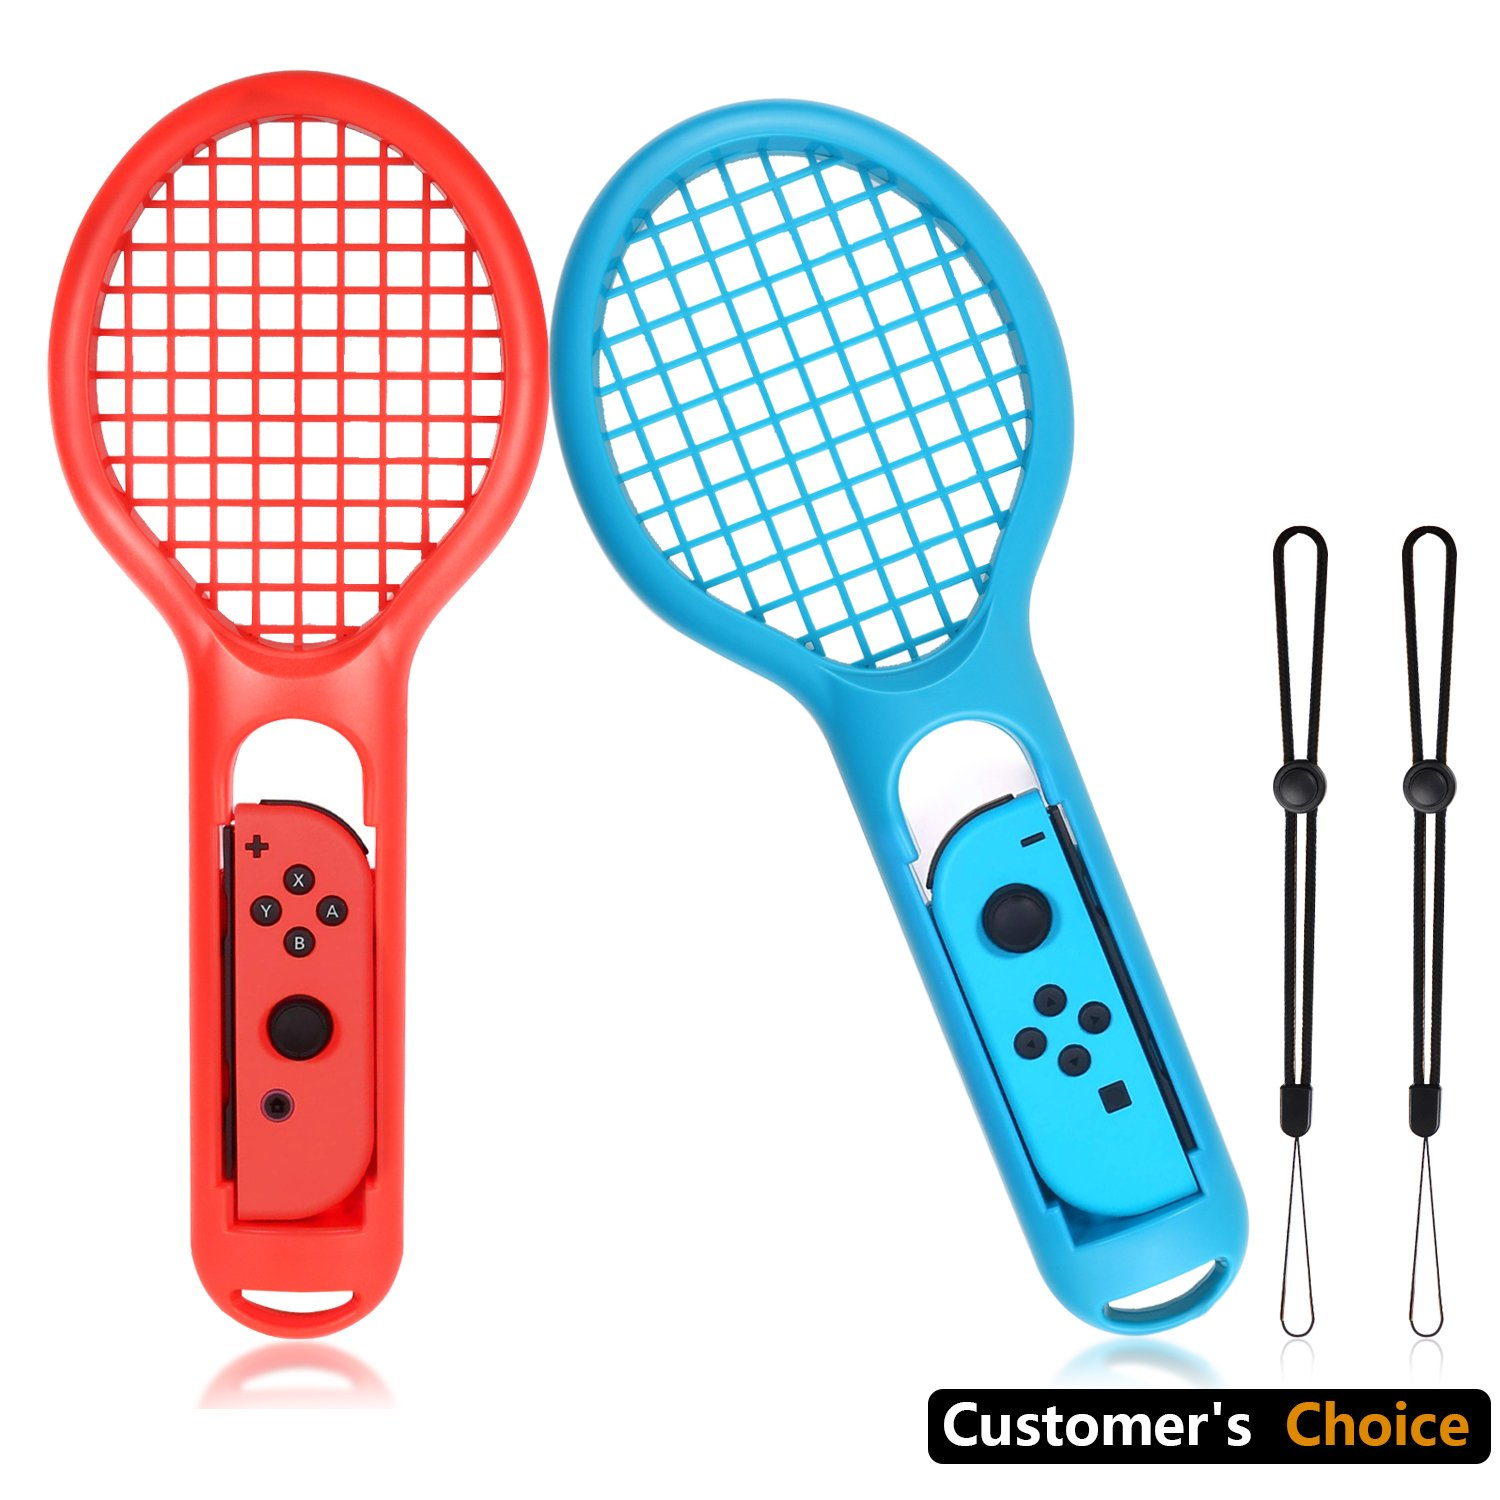 Nintendo tennis racket for Switch,Tennis Racket for Joy-Con Controllers for Switch Game (1X Blue & 1X Red)